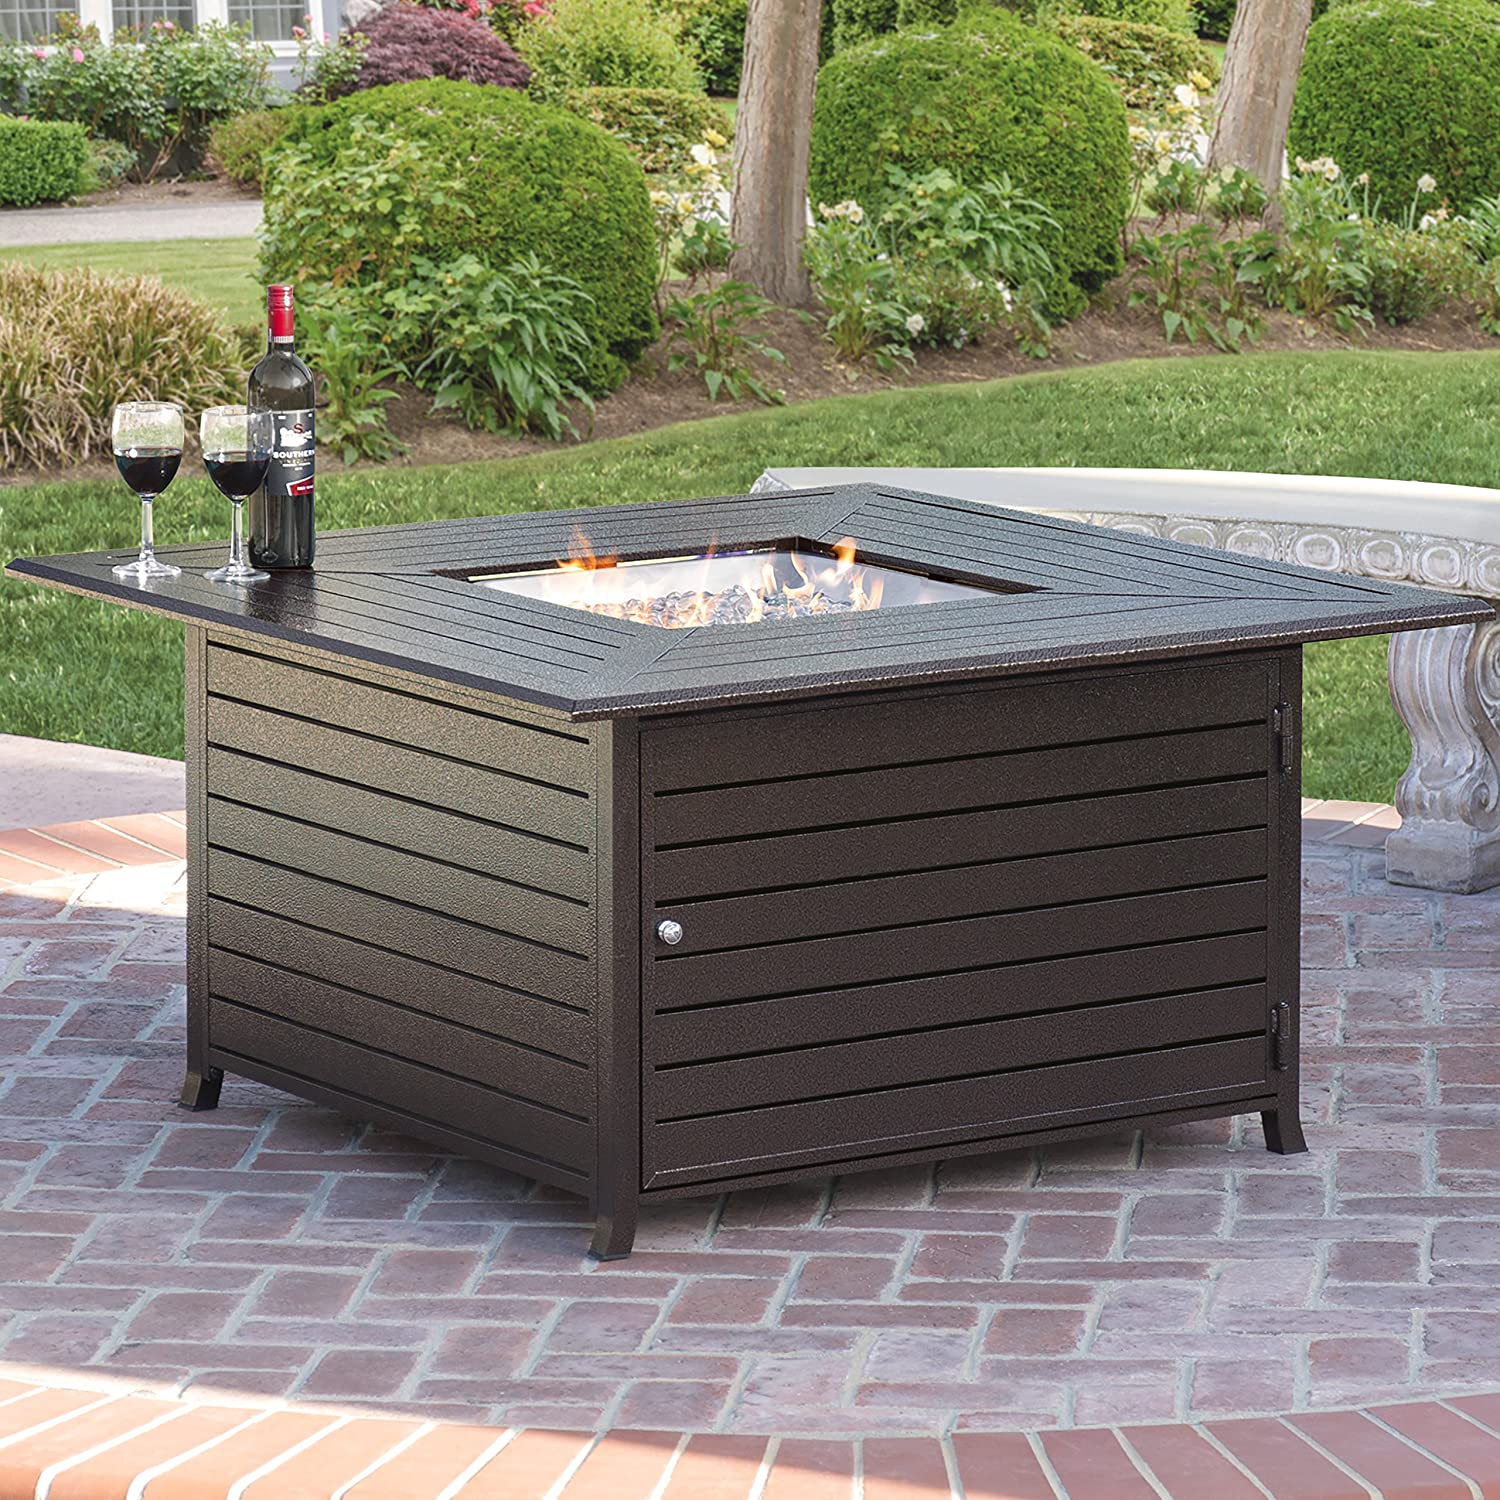 The Best Outdoor Fire Pit 1